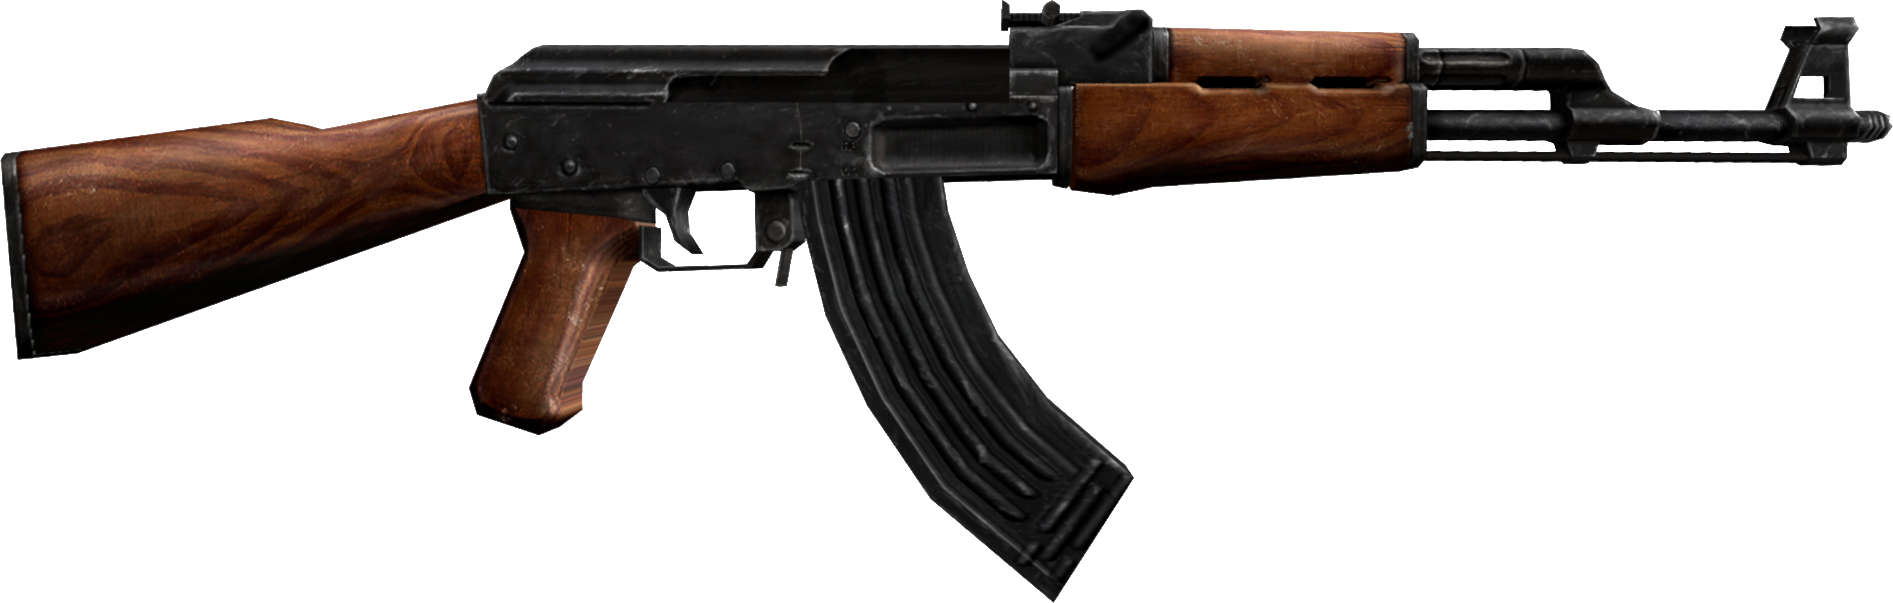 Solider Ak 47 Png image #41254